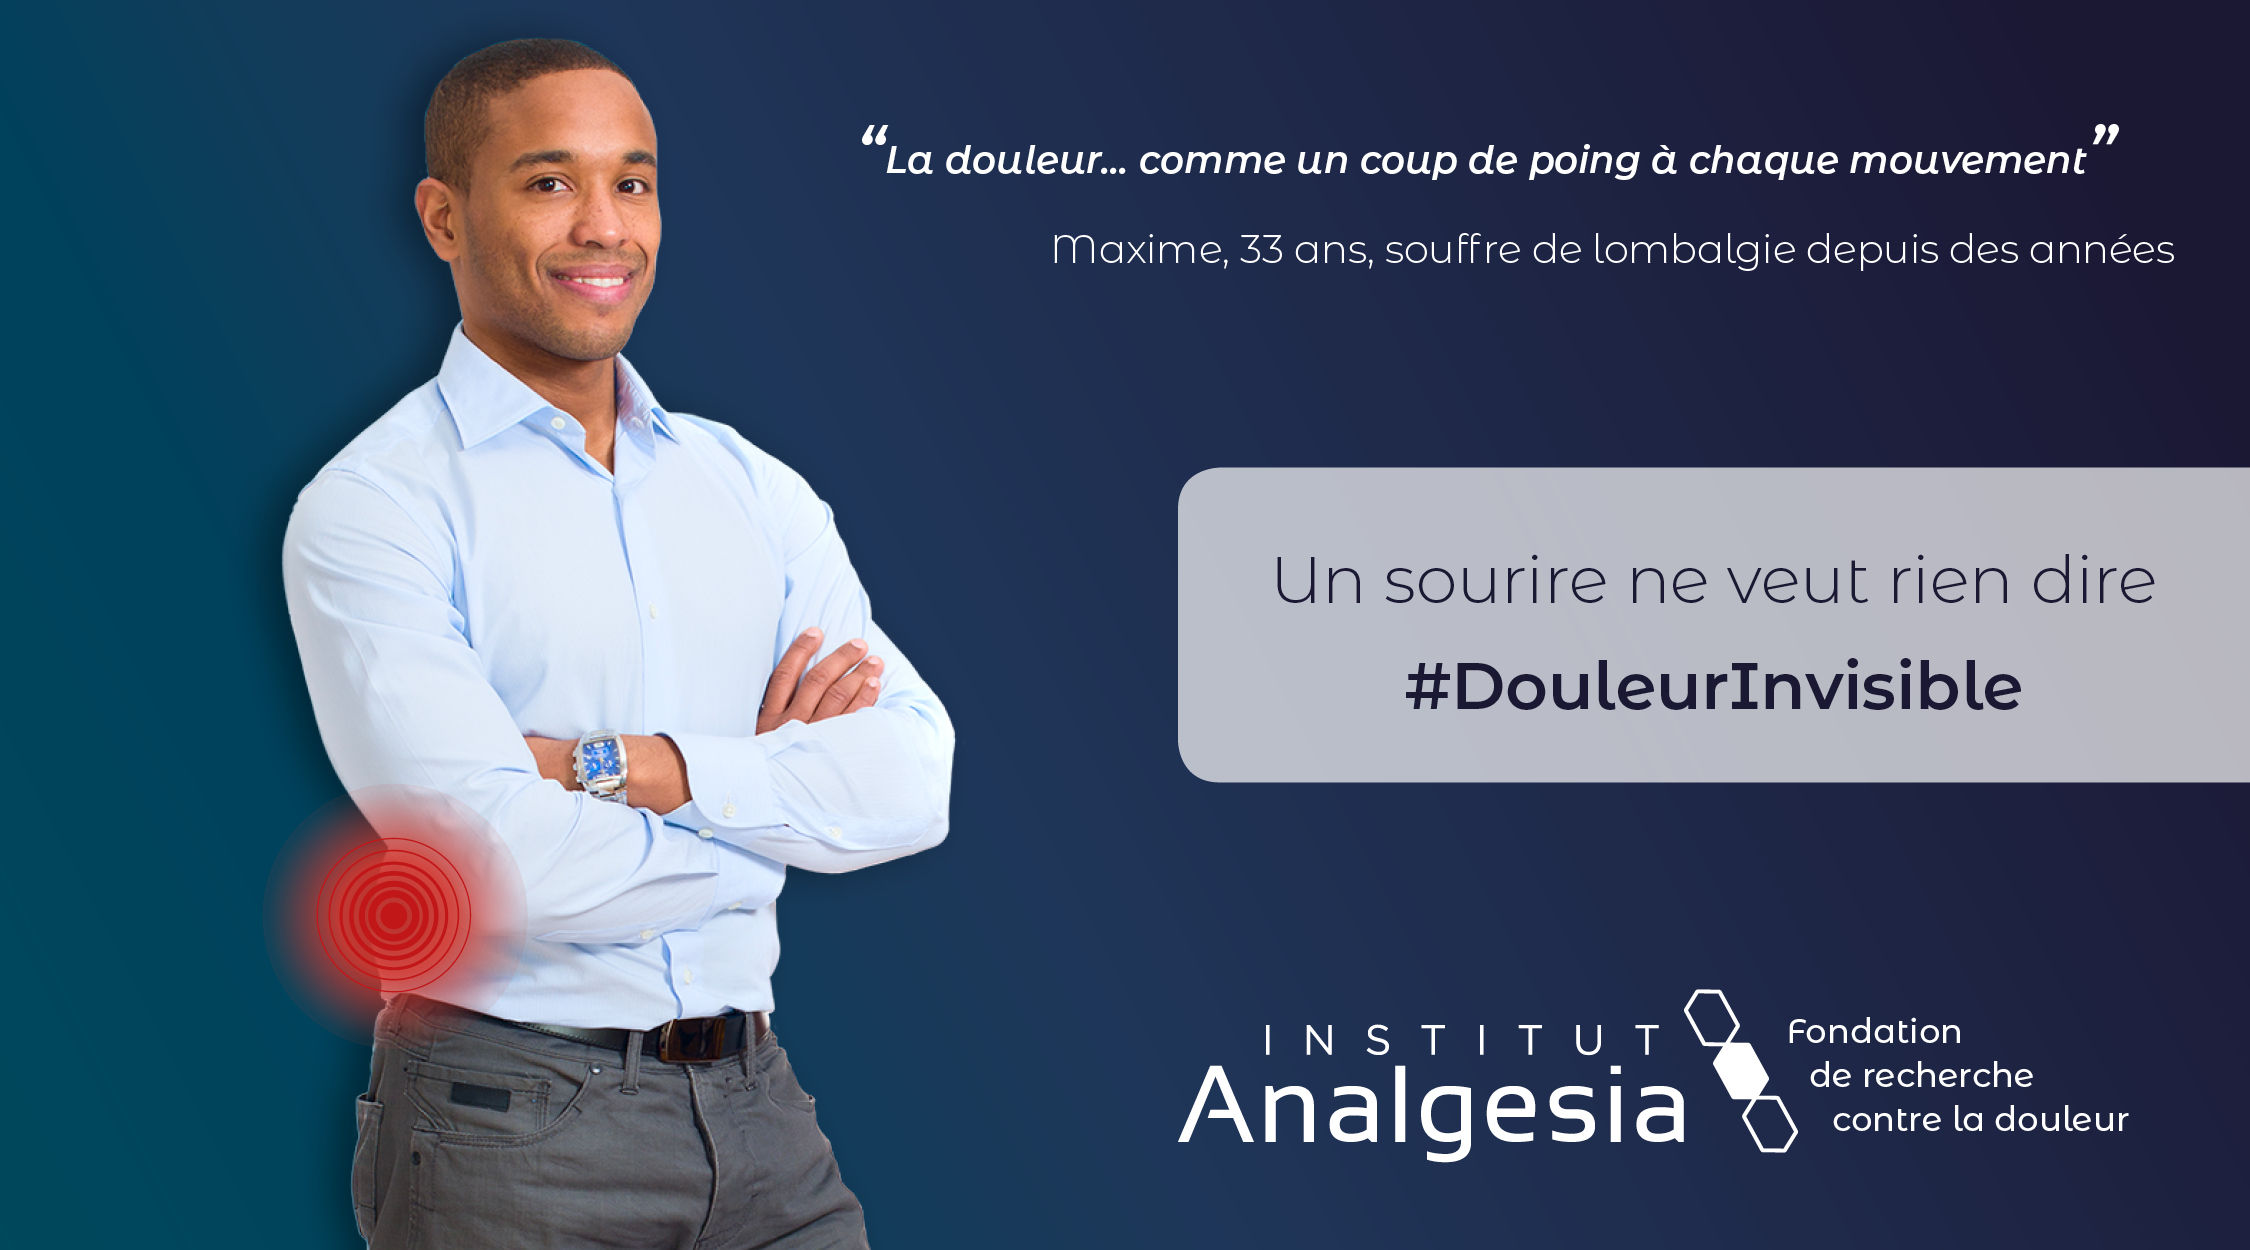 CAMPAGNE DOULEUR INVISIBLE Maxime